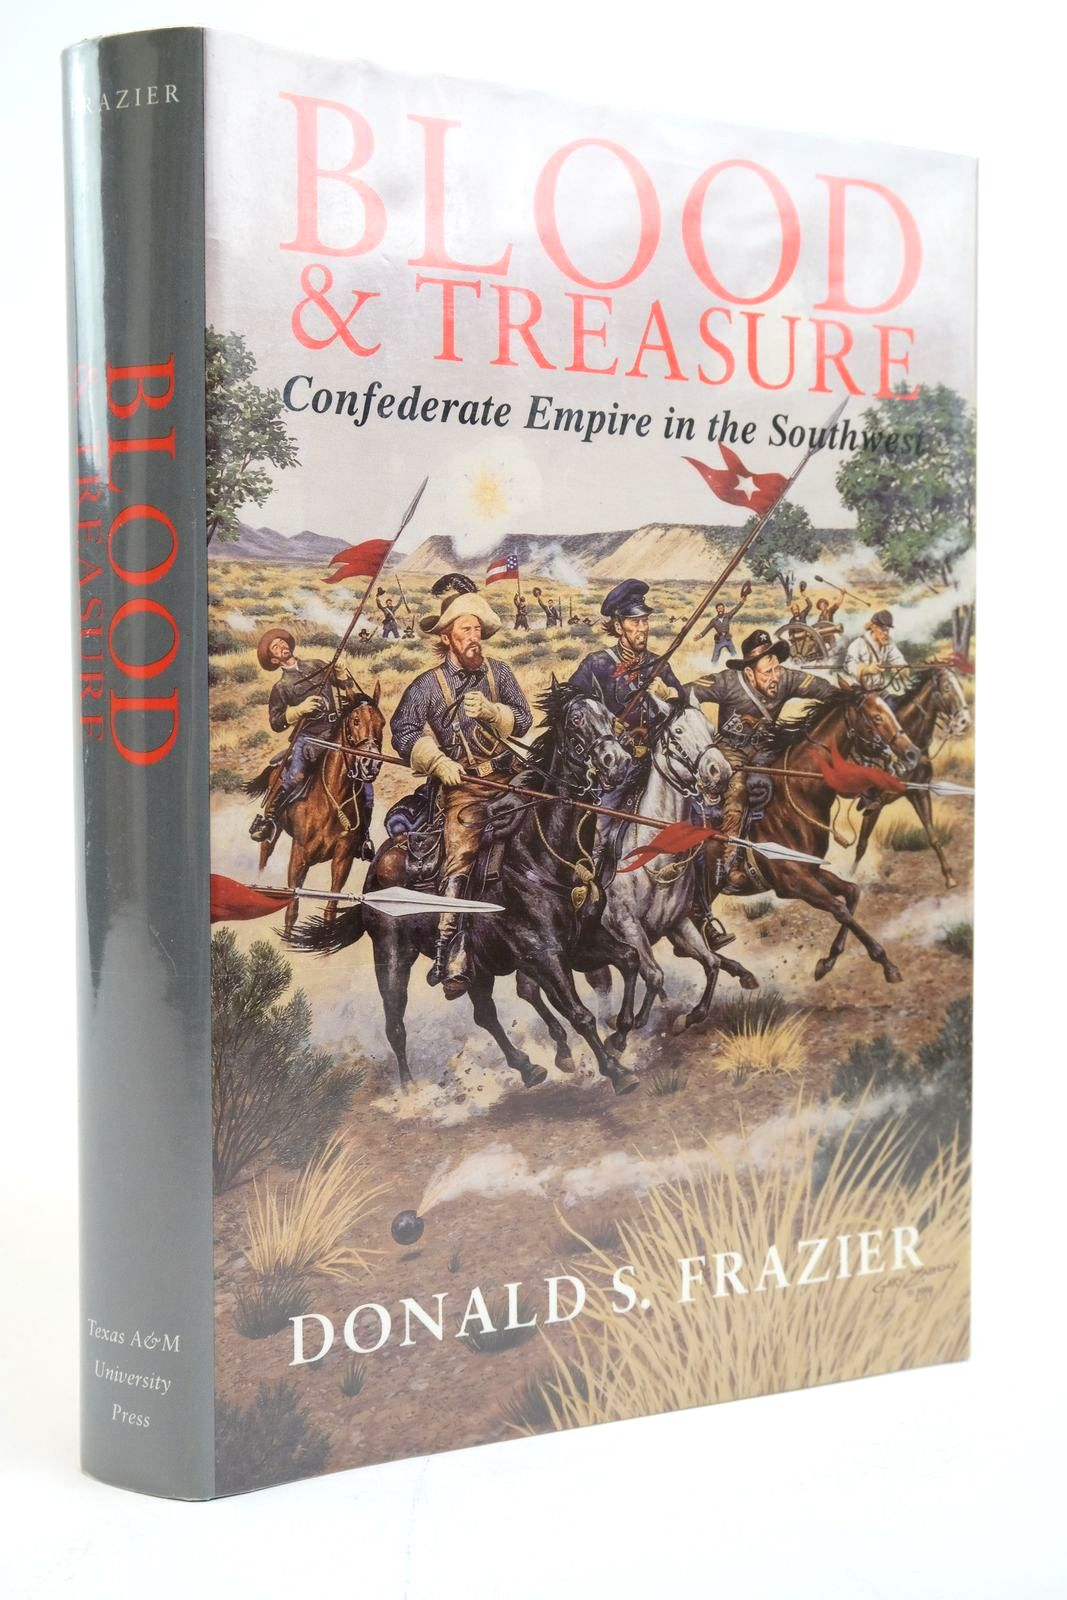 Photo of BLOOD & TREASURE: CONFEDERATE EMPIRE IN THE SOUTHWEST written by Frazier, Donald S. published by Texas A. & M. University Press (STOCK CODE: 2135263)  for sale by Stella & Rose's Books